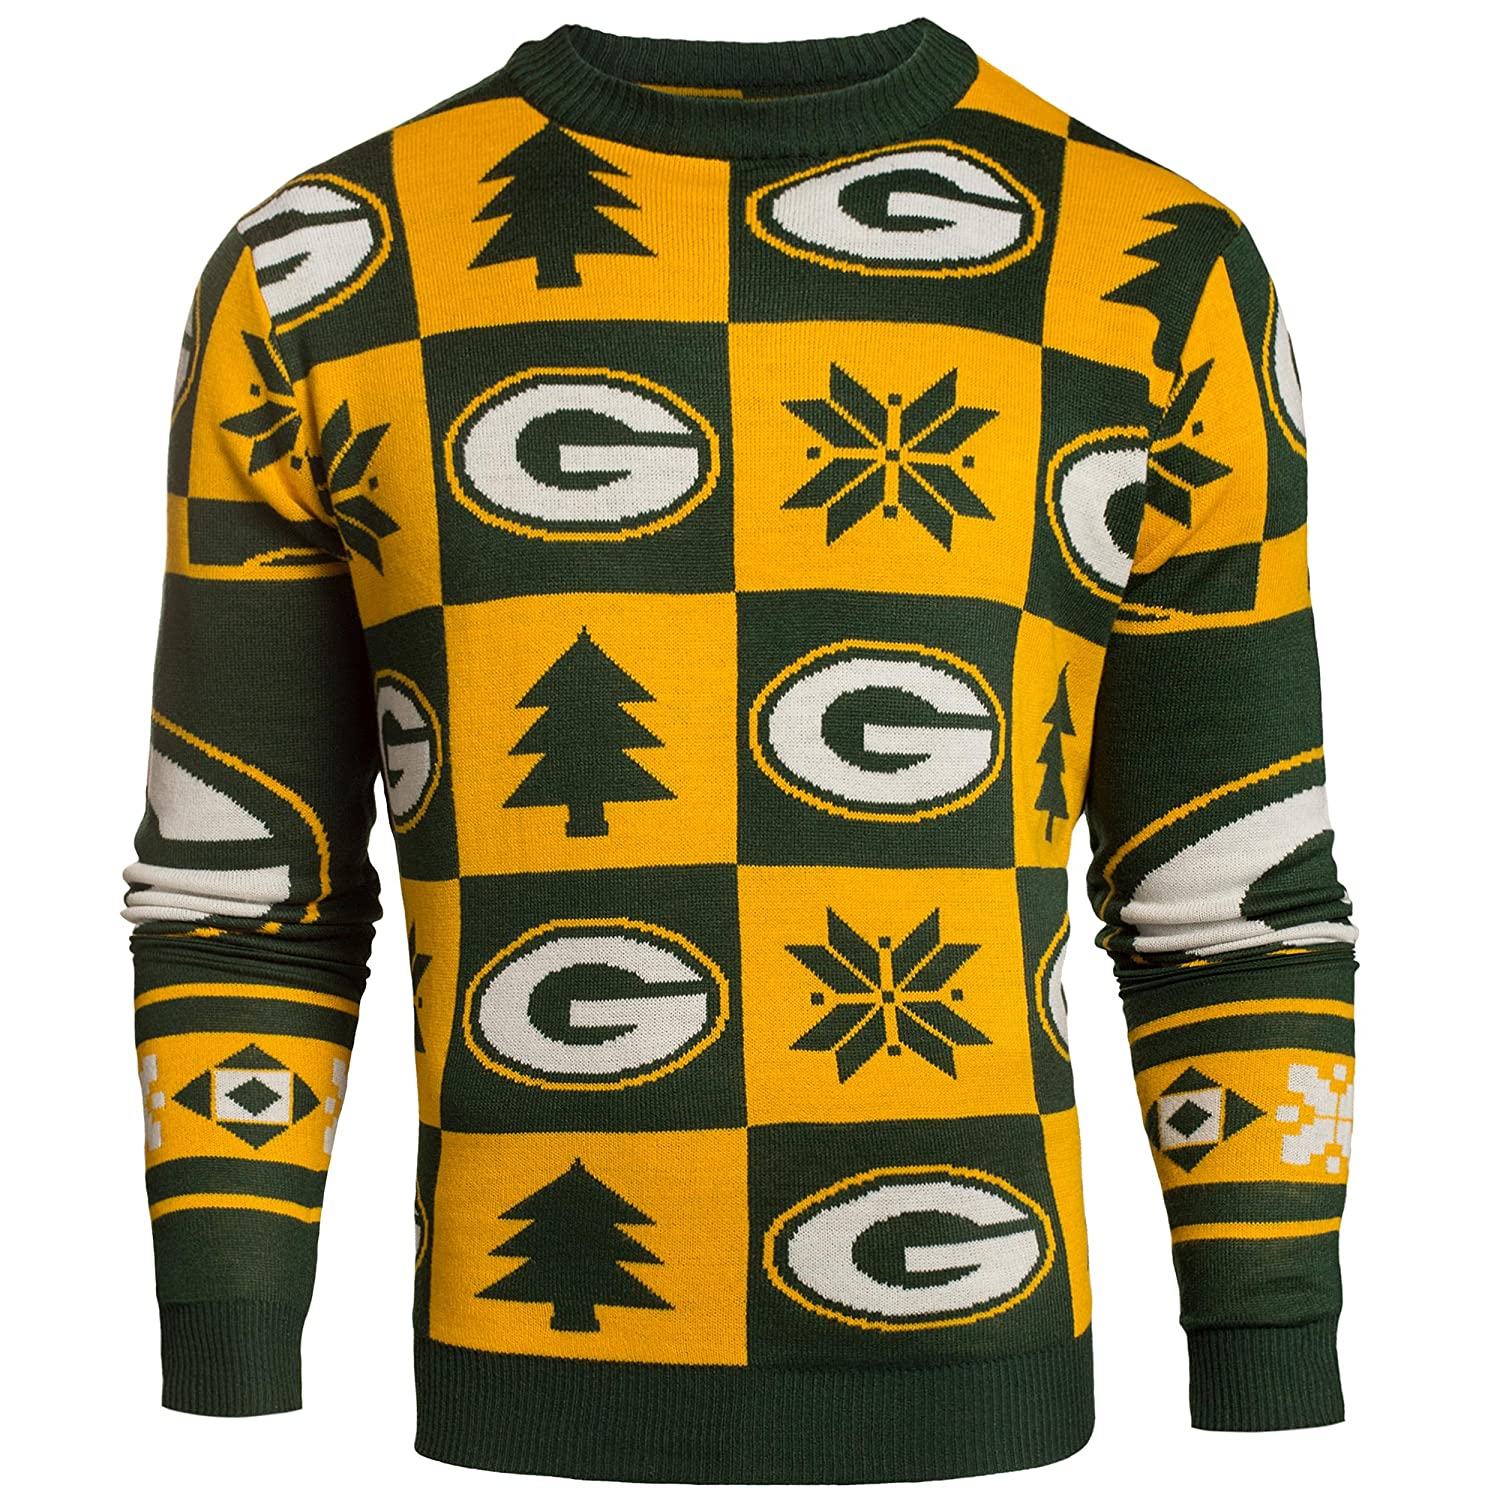 Green Bay Packers 2016 Ugly Sweater